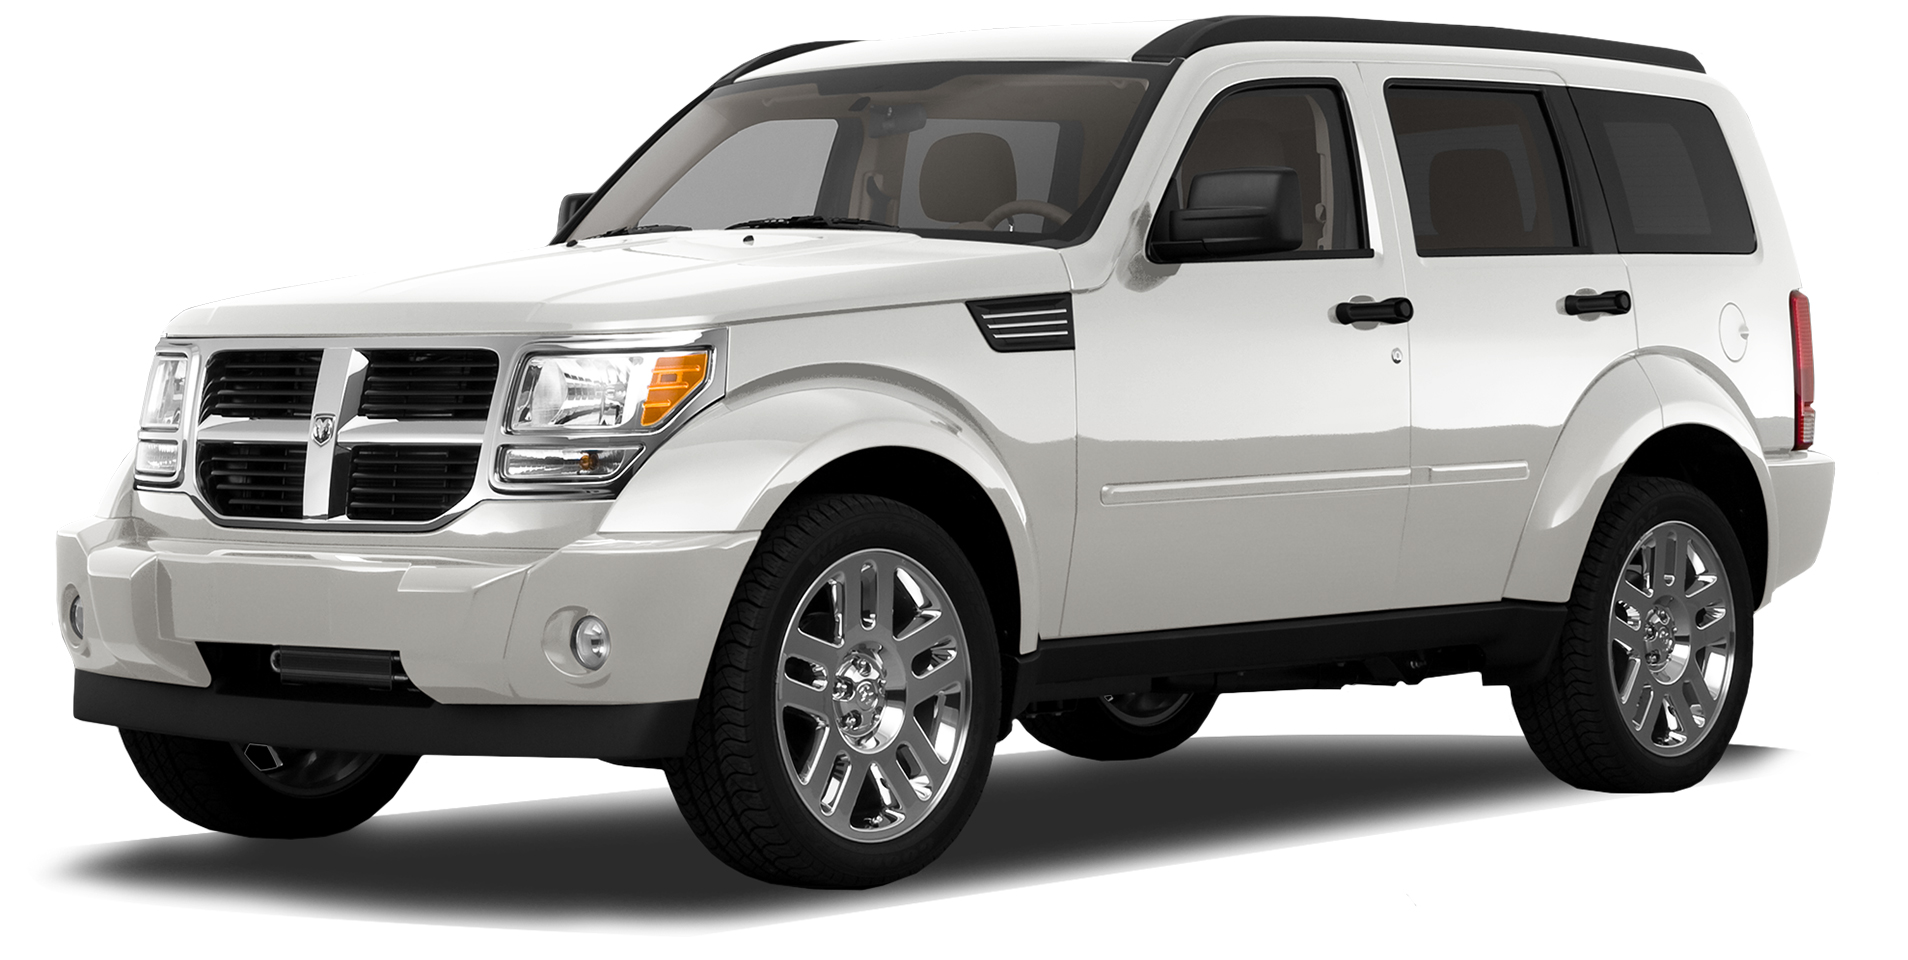 2007 dodge nitro tipm solutions tipms and repairs mak 39 s. Black Bedroom Furniture Sets. Home Design Ideas